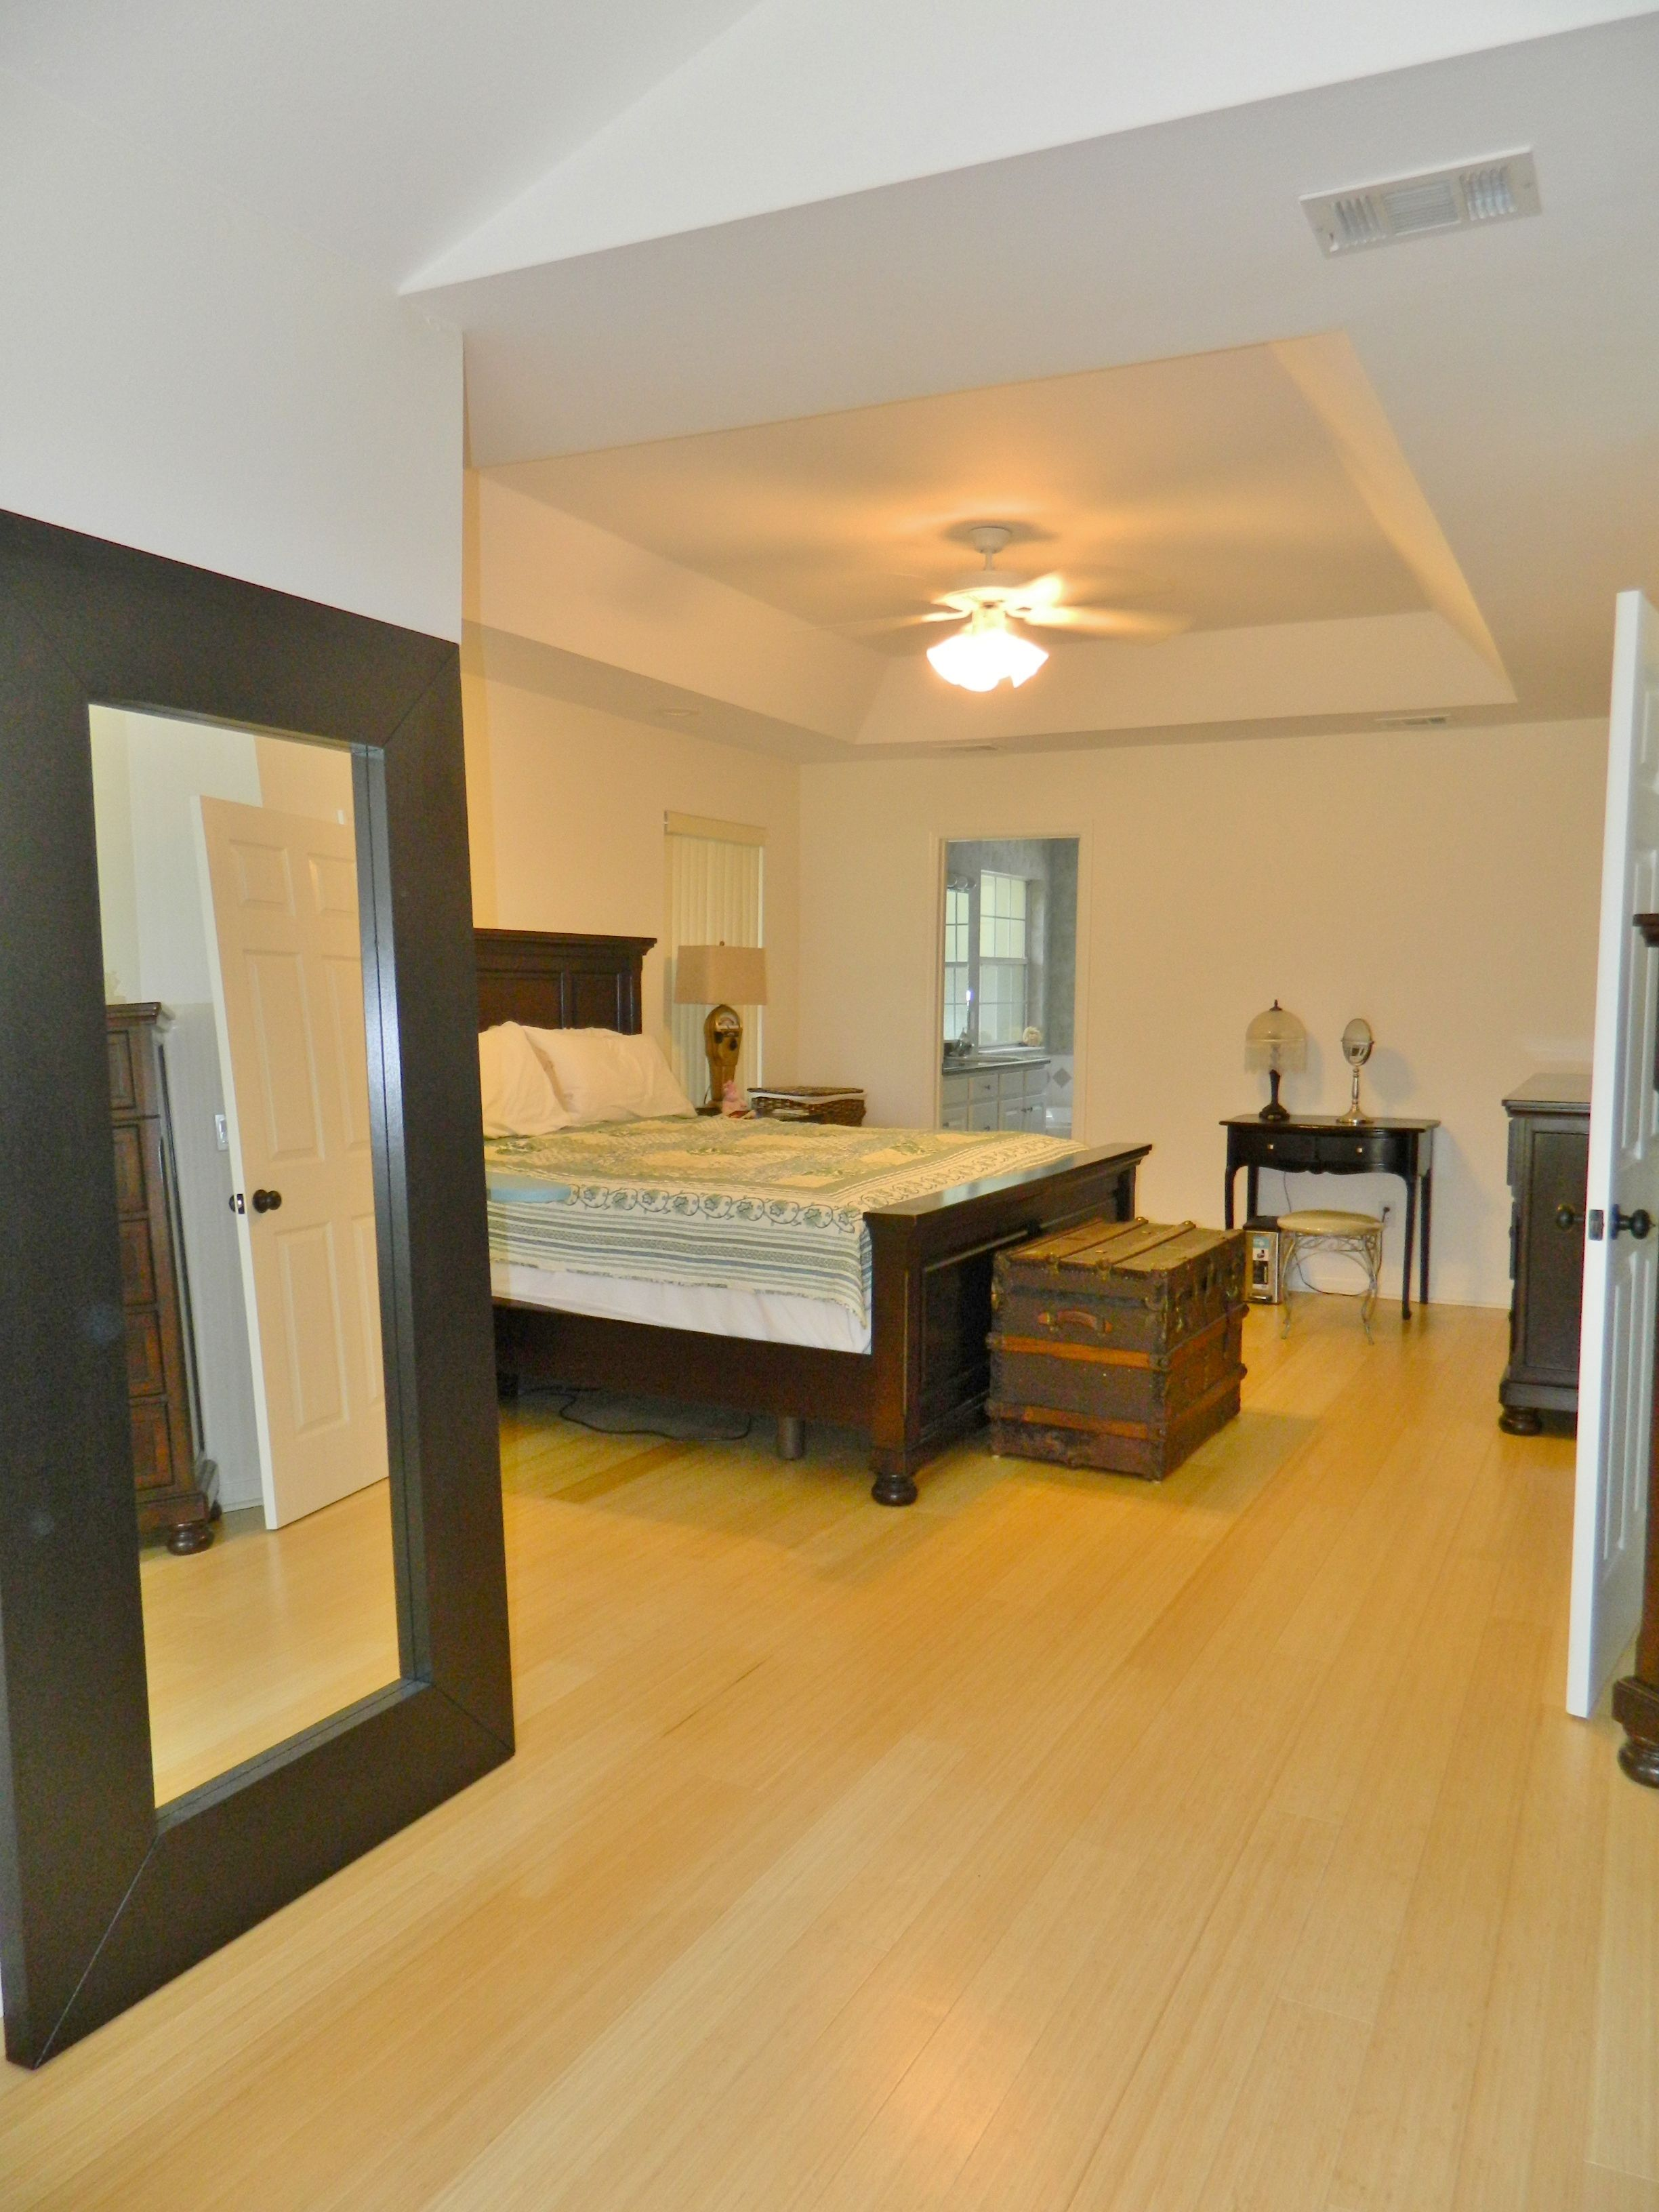 master bedroom suite in this Tallahassee home